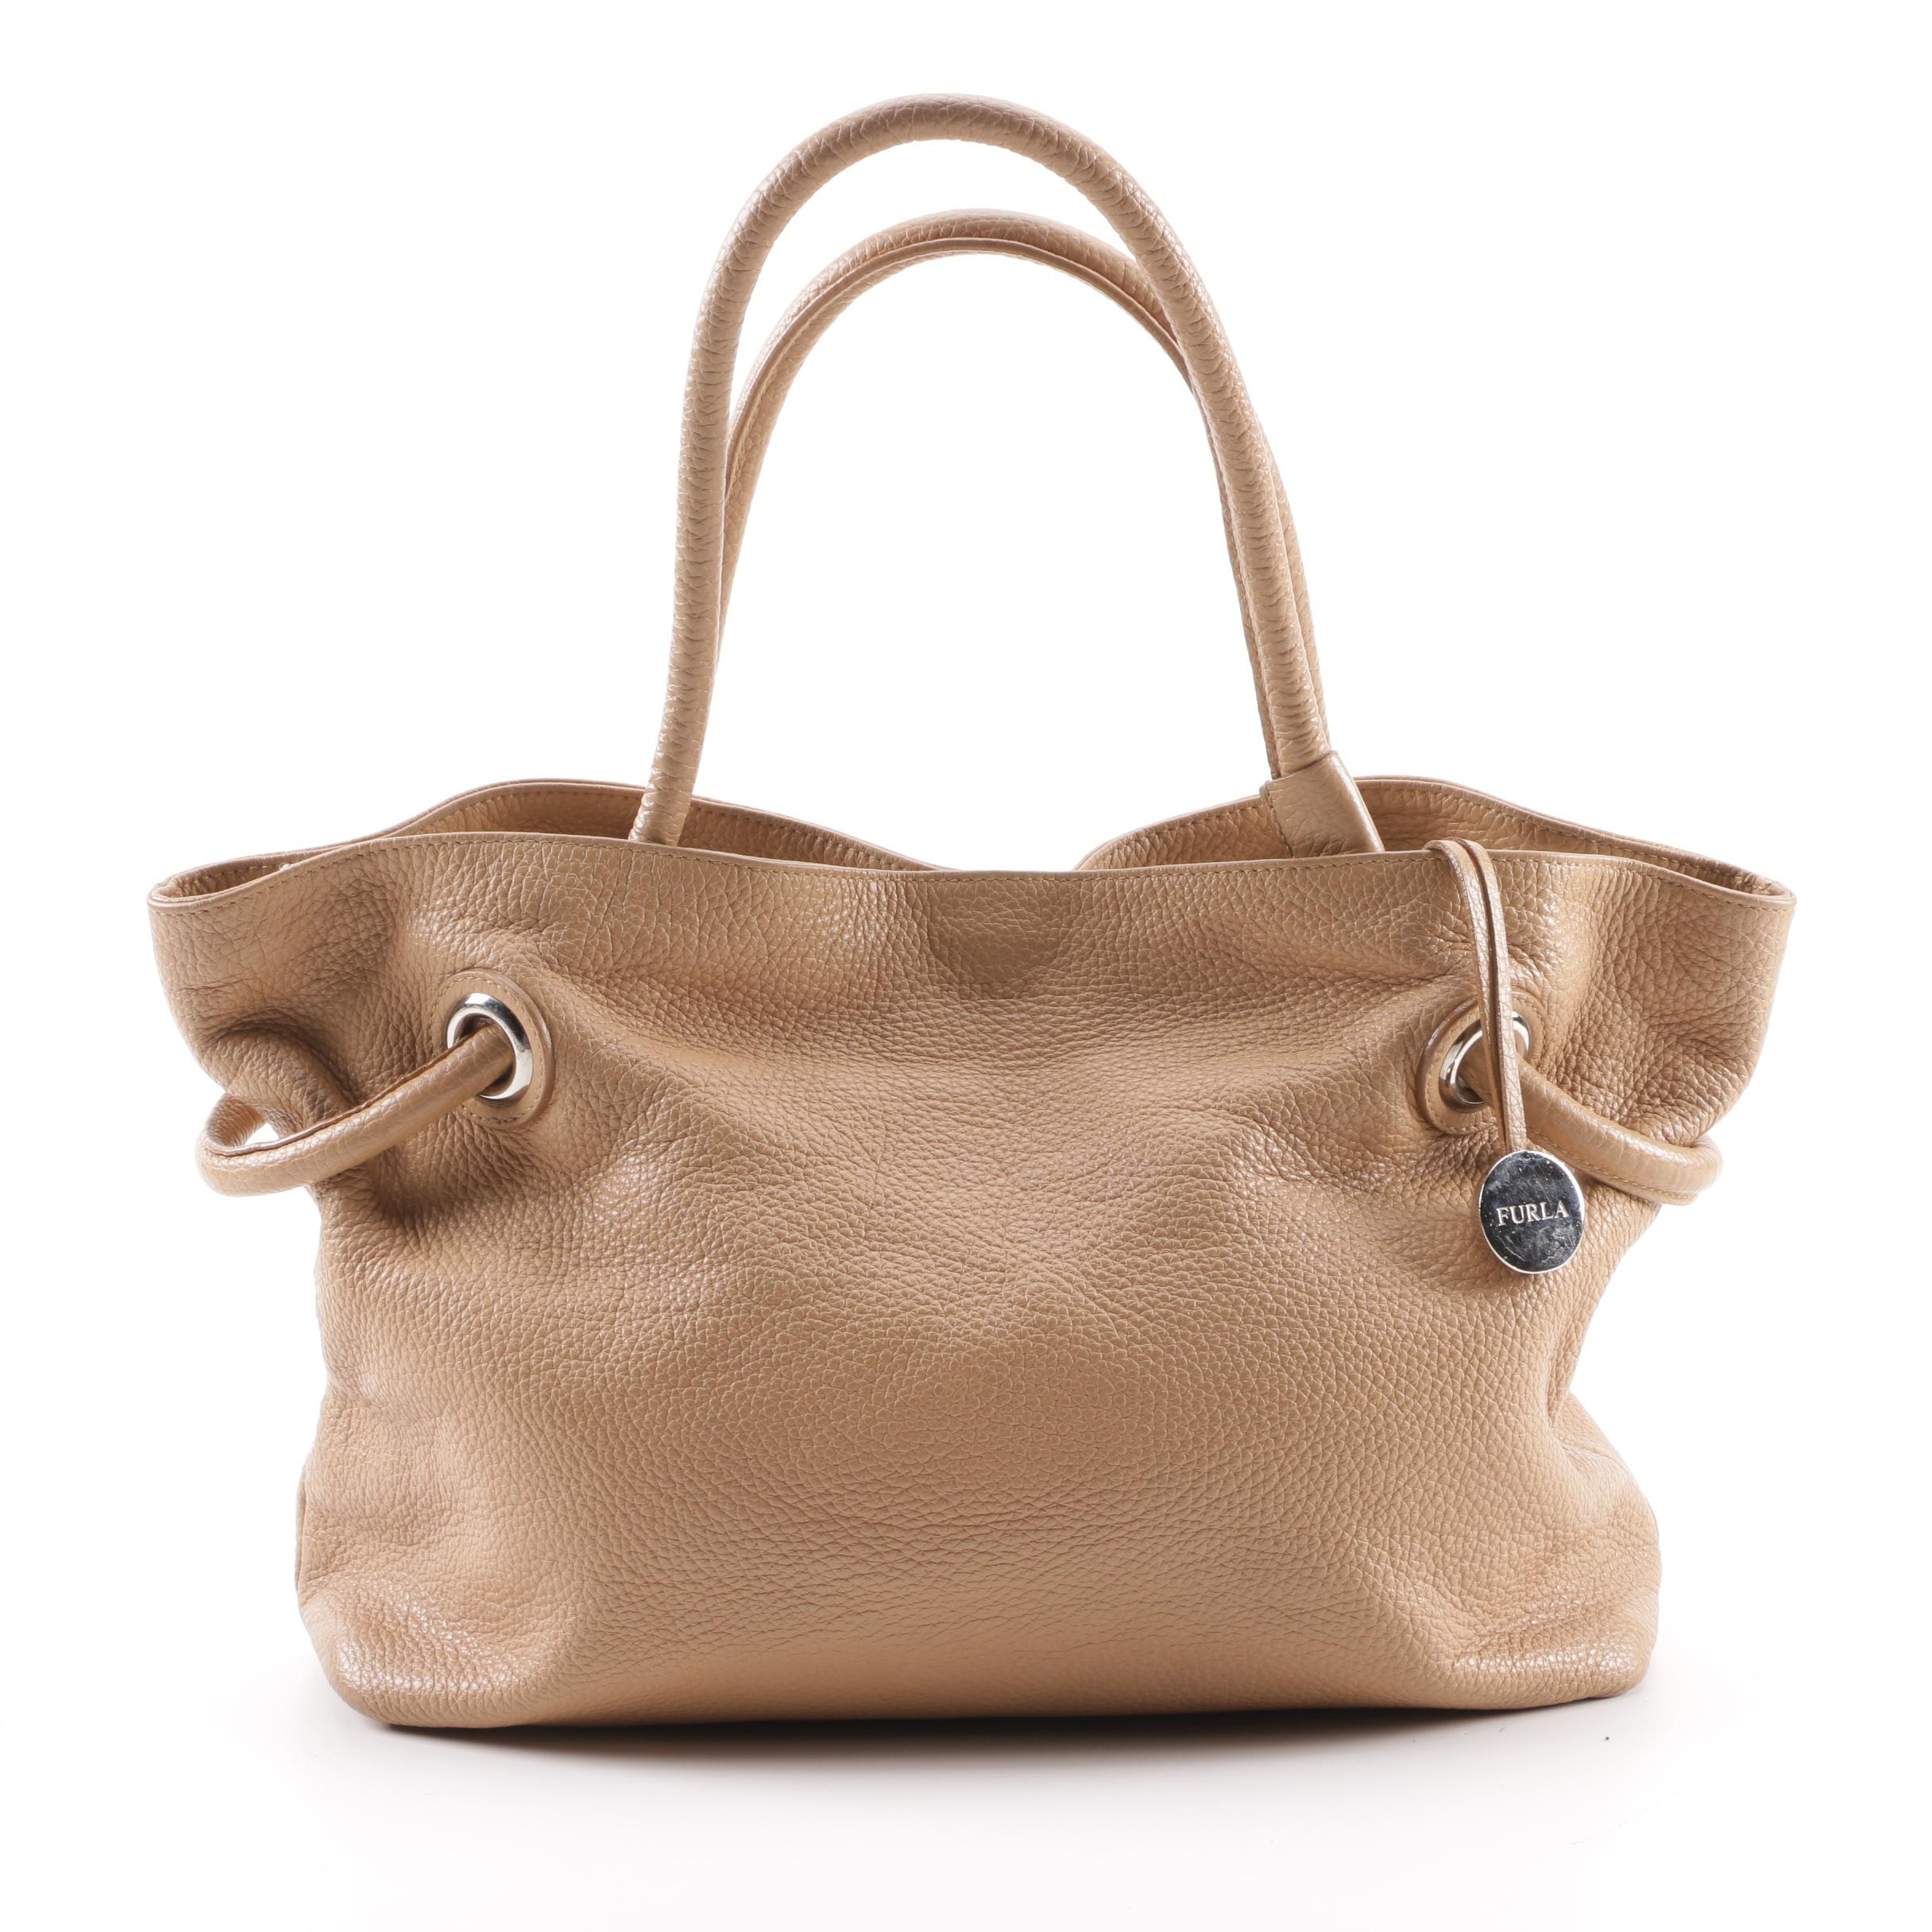 Furla Tan Pebbled Leather Tote